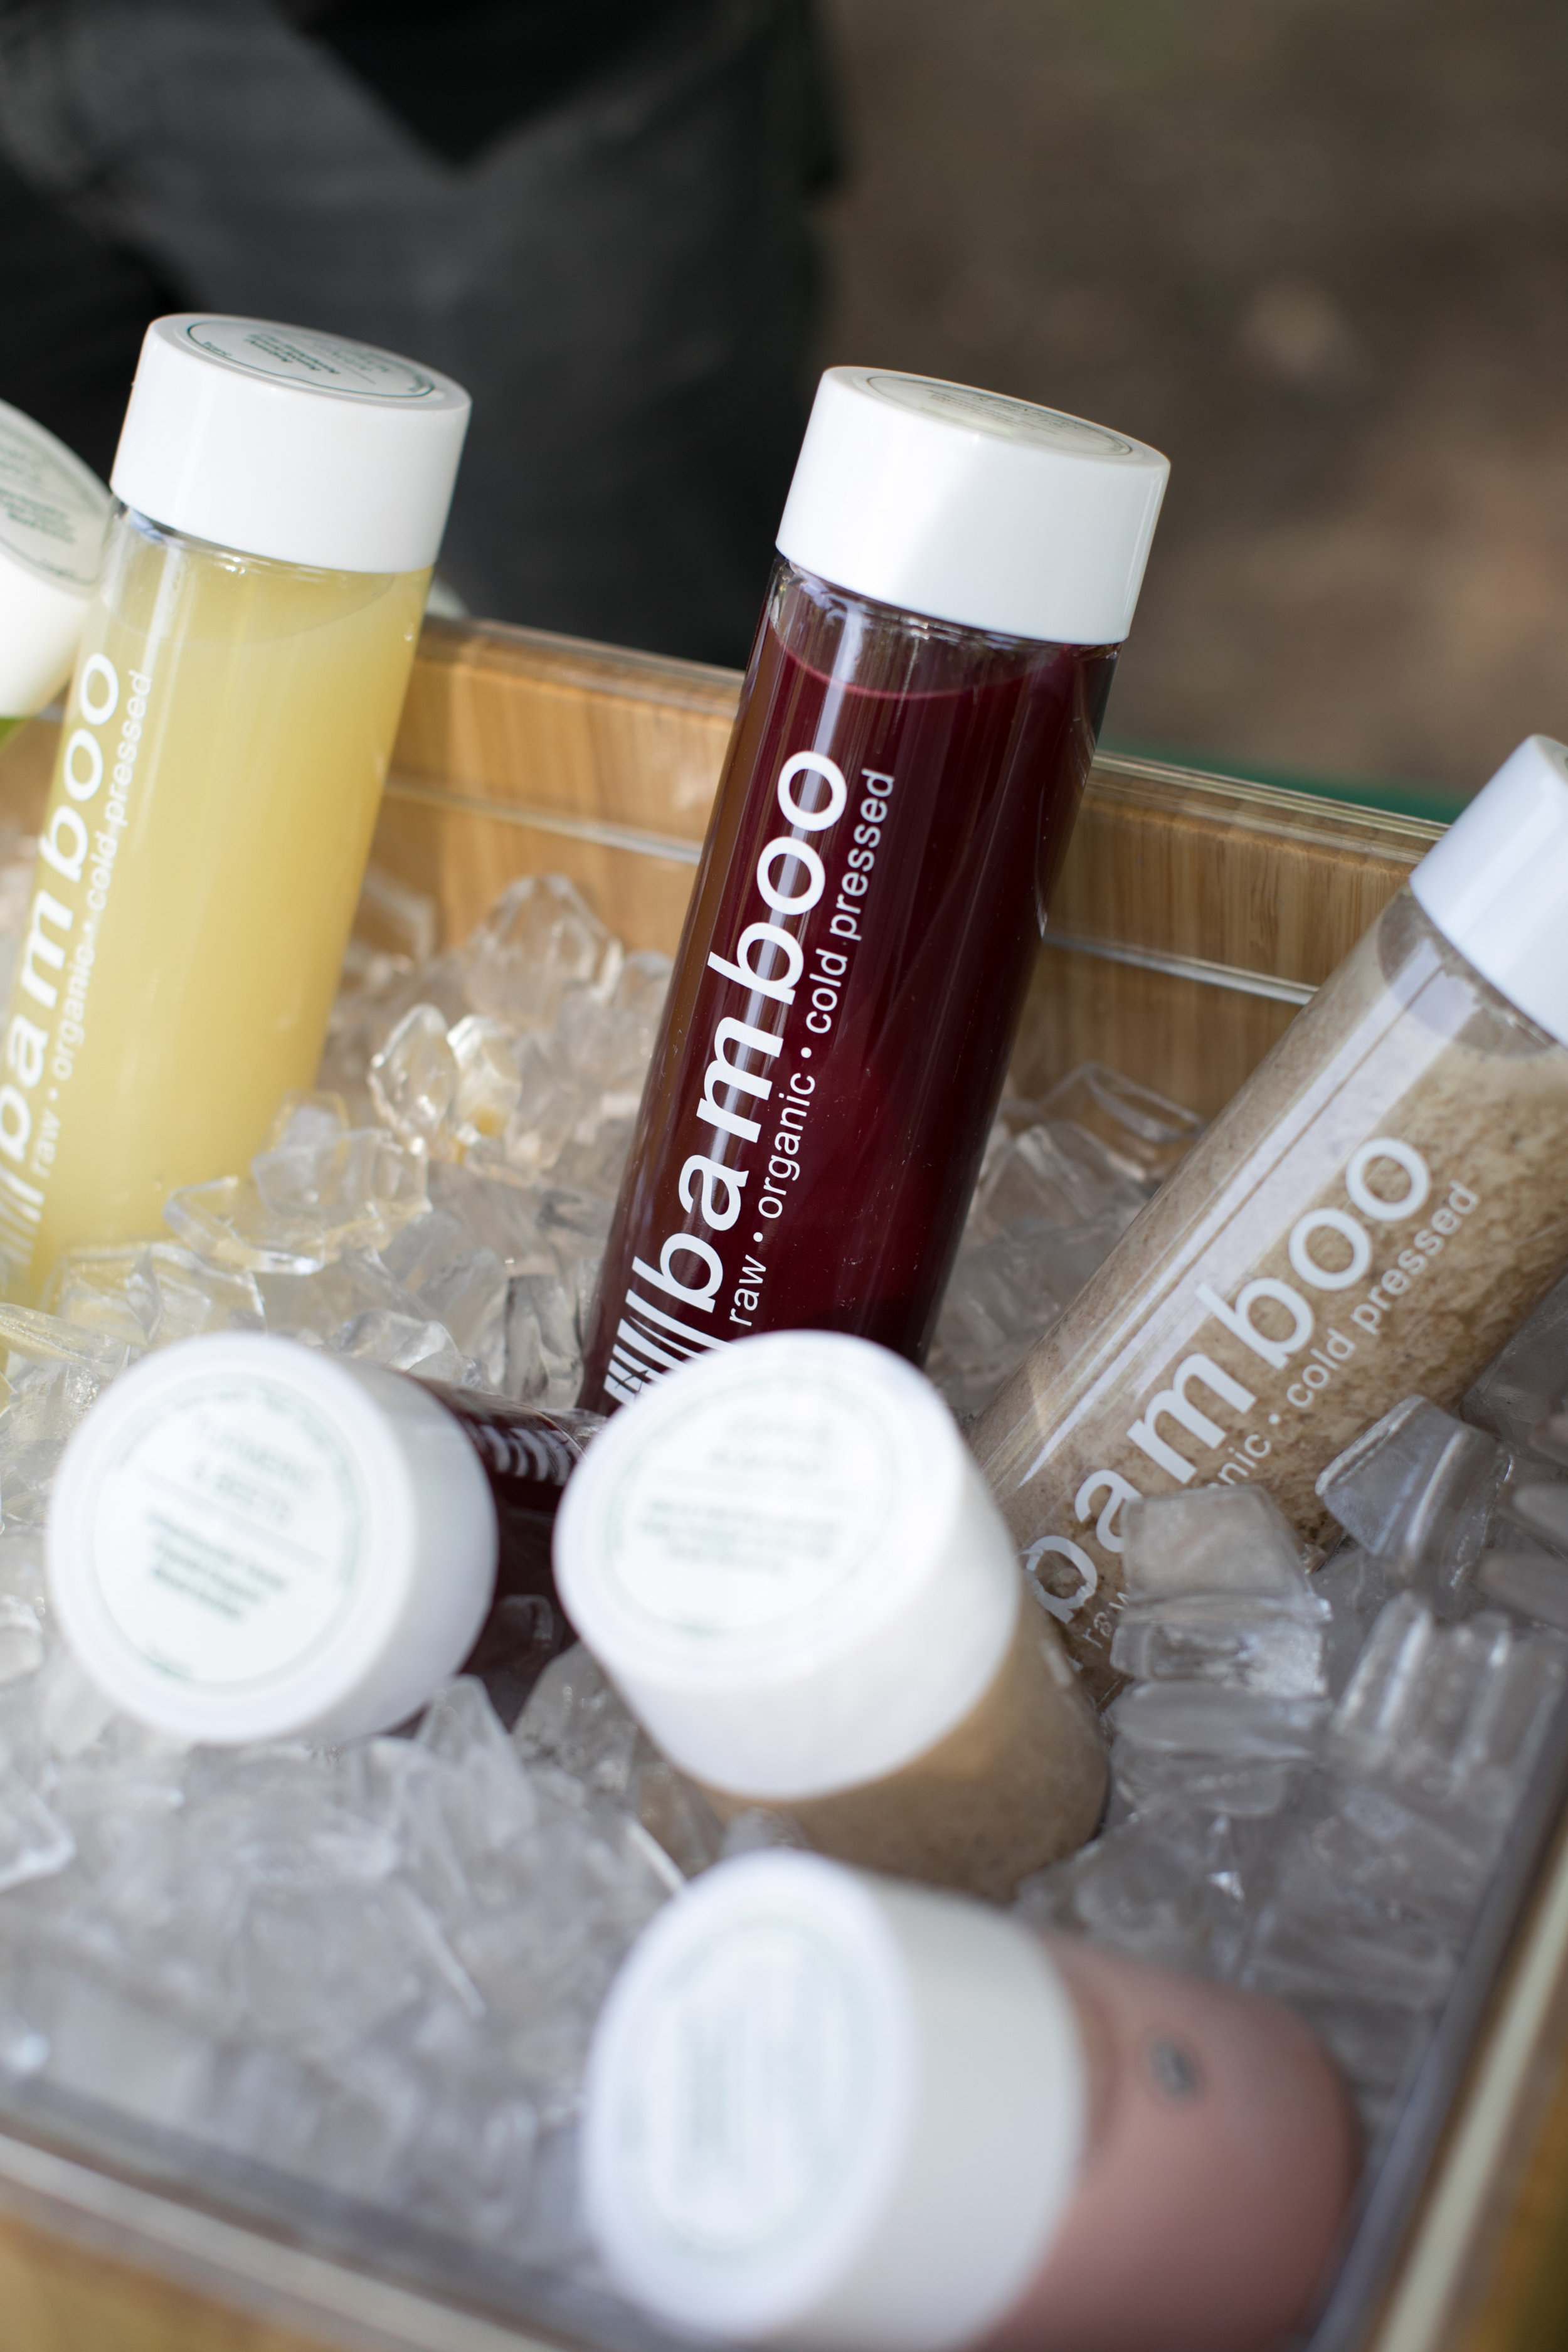 Bamboo Juices   Palmetto, GA   www.bamboojuices.com   Cold-pressed organic juice